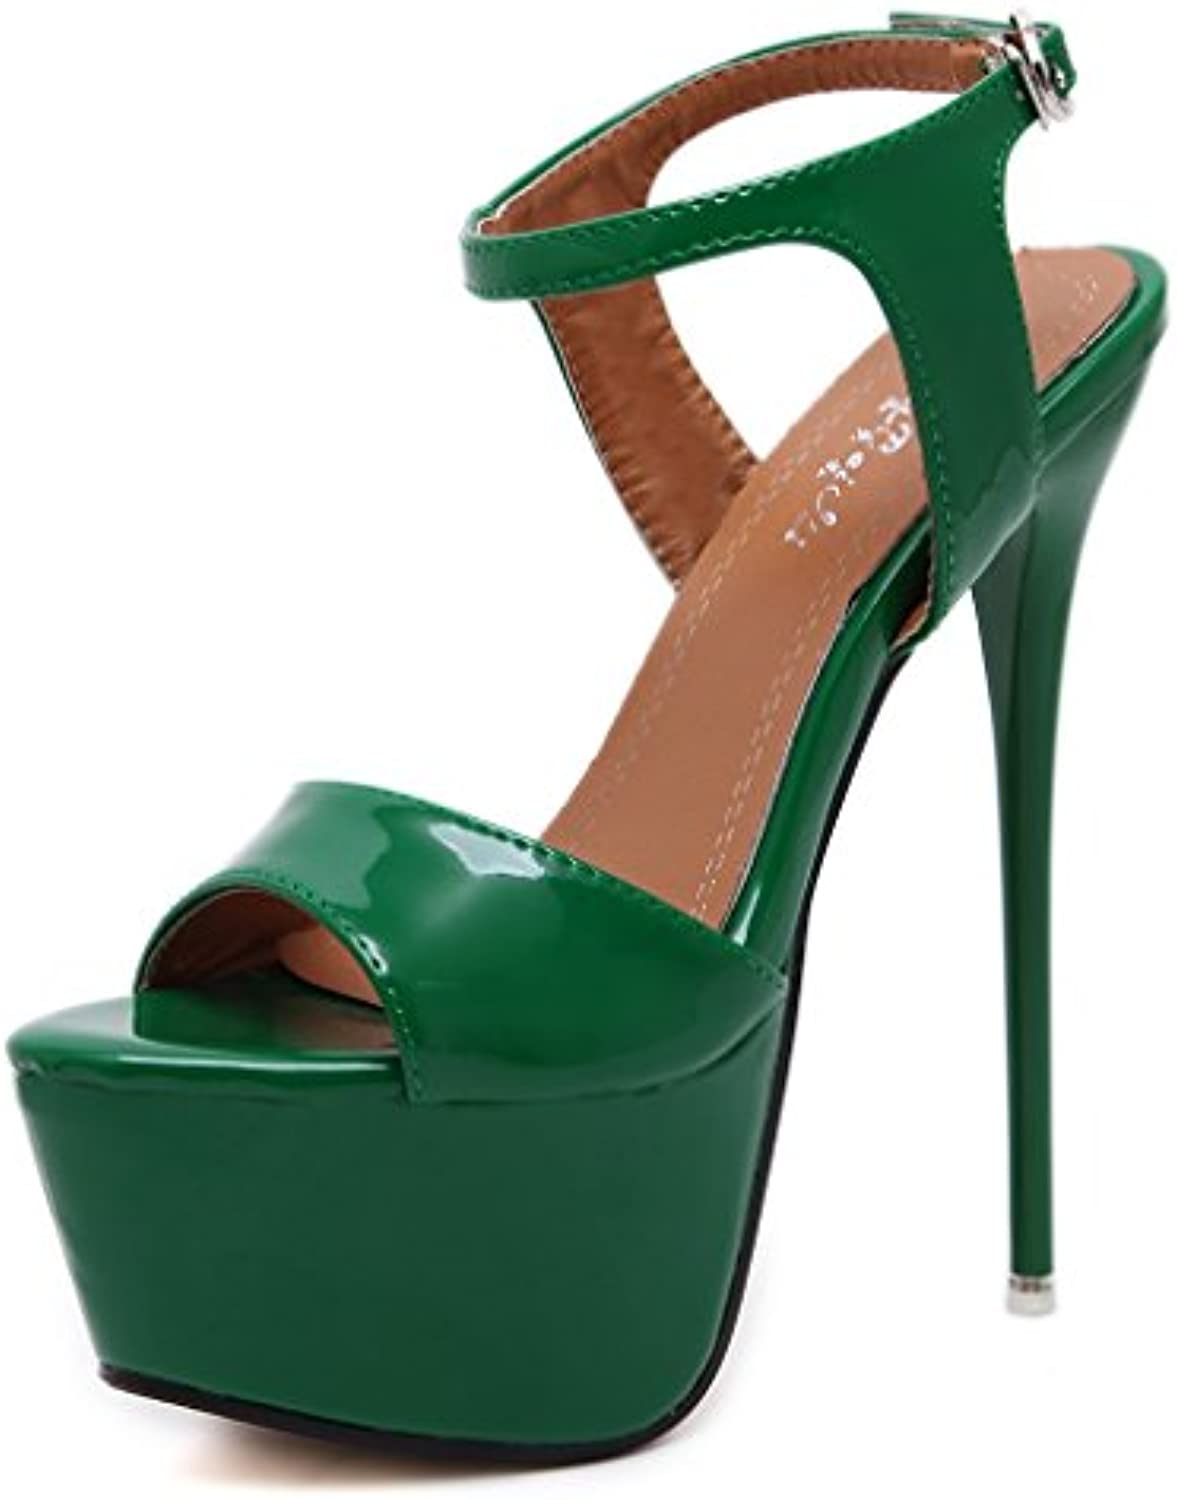 cdc89f8e80dcf6 ALUK- Europe And The United States Wild Fashion Fashion Fashion High-heeled  Temperament With Women s Shoes ( Color   Green